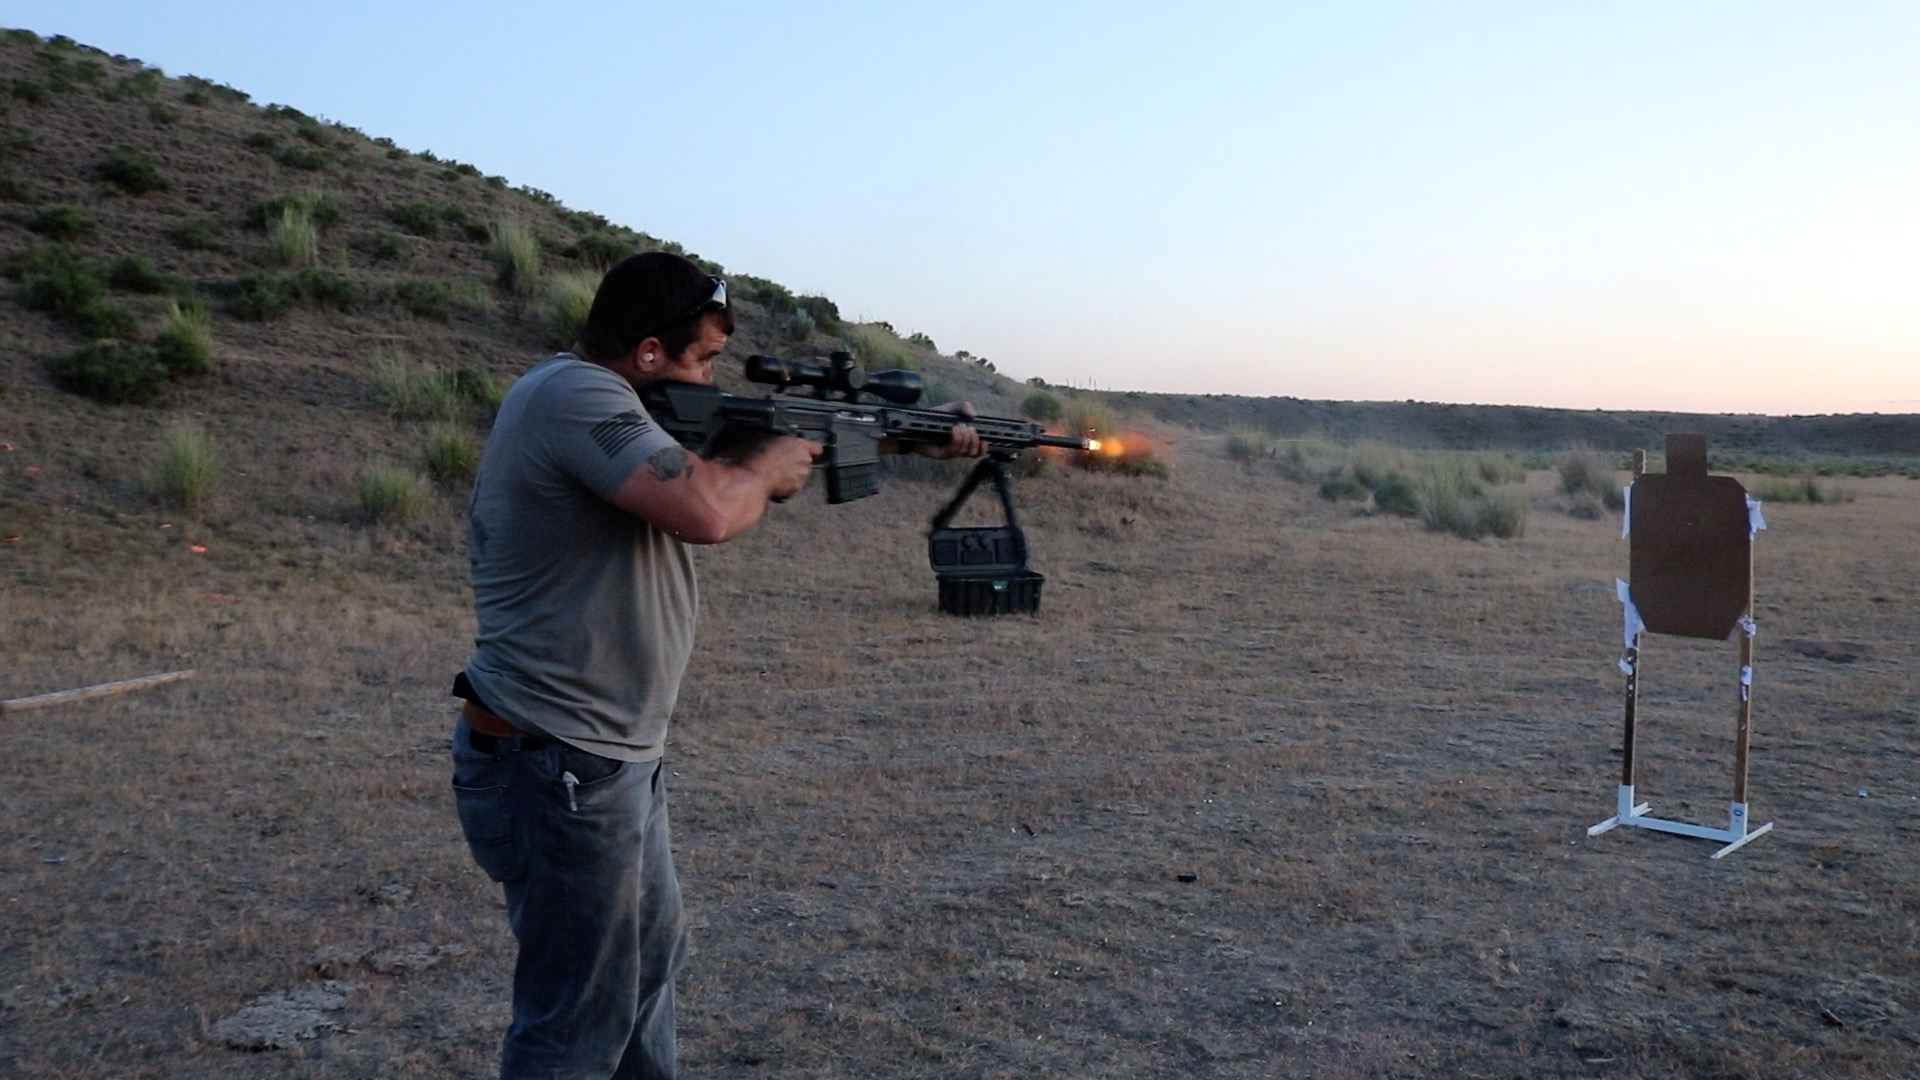 nemo omen 300 win mag ar gets a turbo charger gunsamerica digest